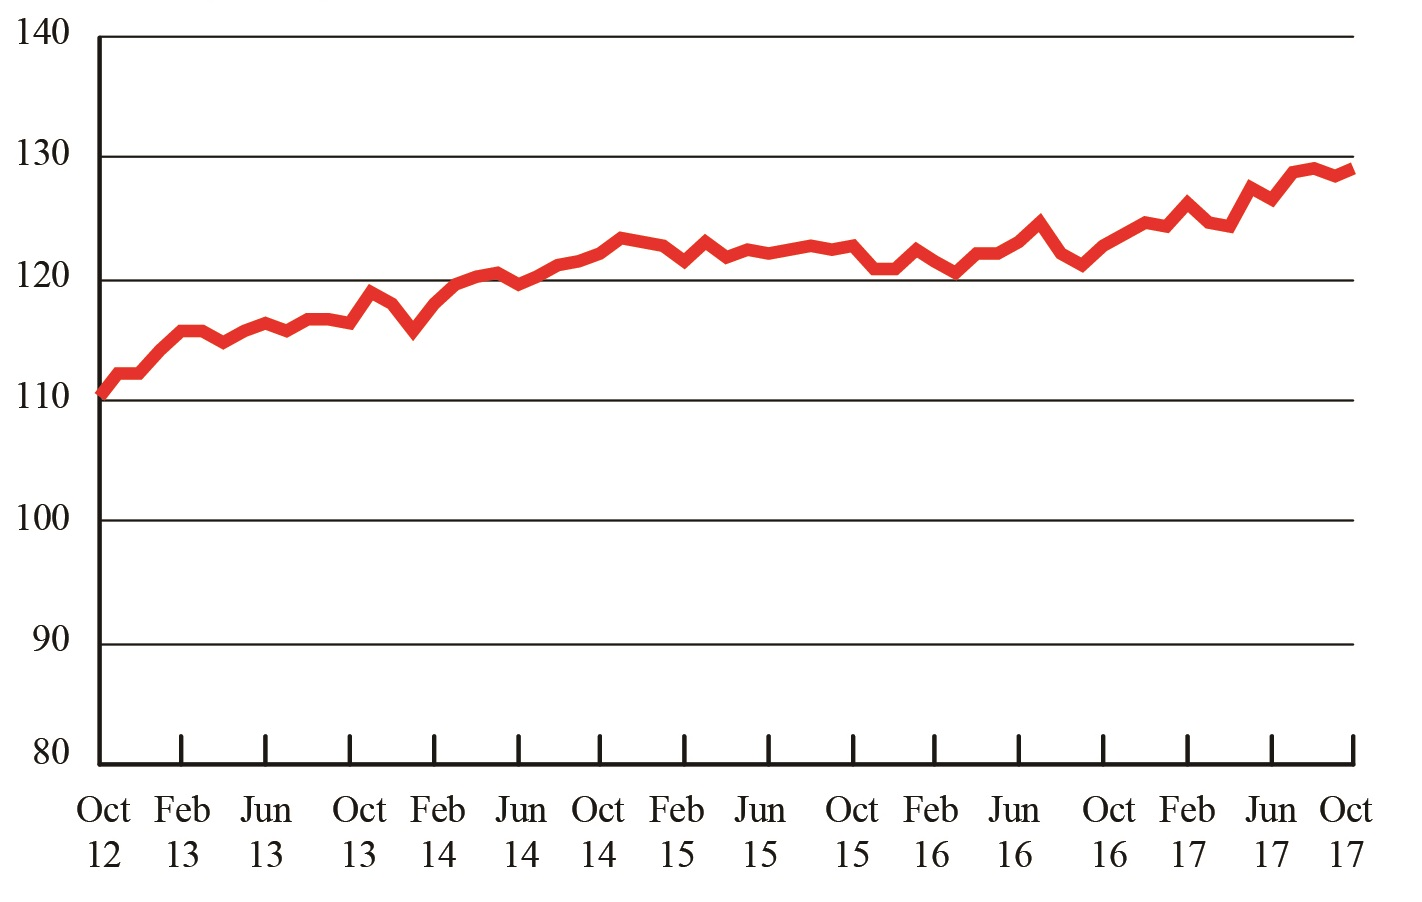 For-Hire Freight Level Hits Third Record High in Past Four Months